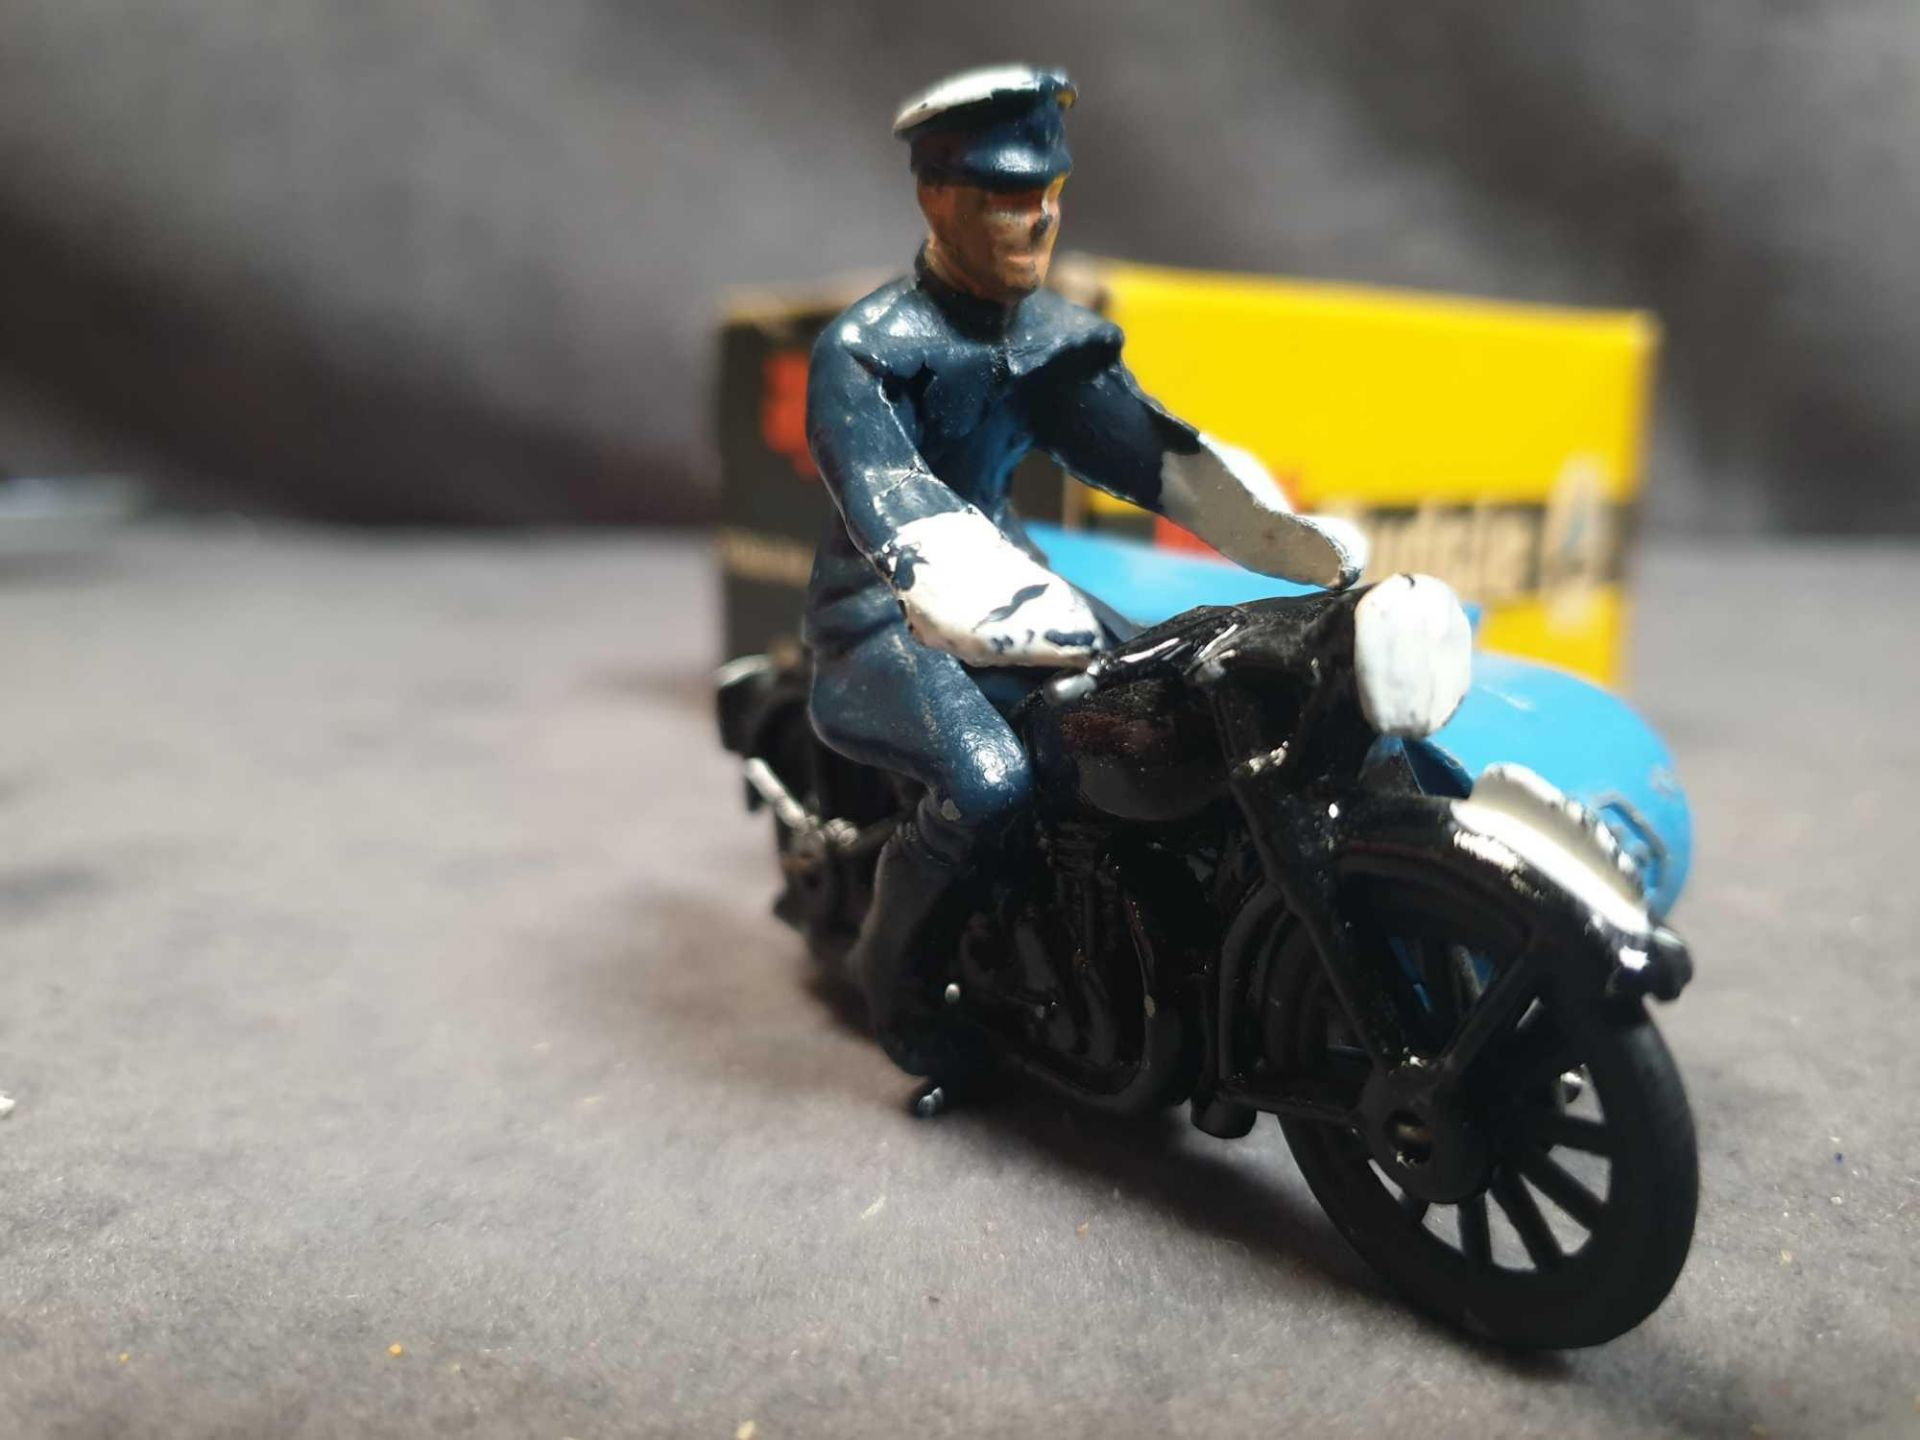 Virtually Mint Budgie Toys England #454 RAC Motorcycle Patrol Diecast;In Excellent Firm Box (Tiny - Image 2 of 5